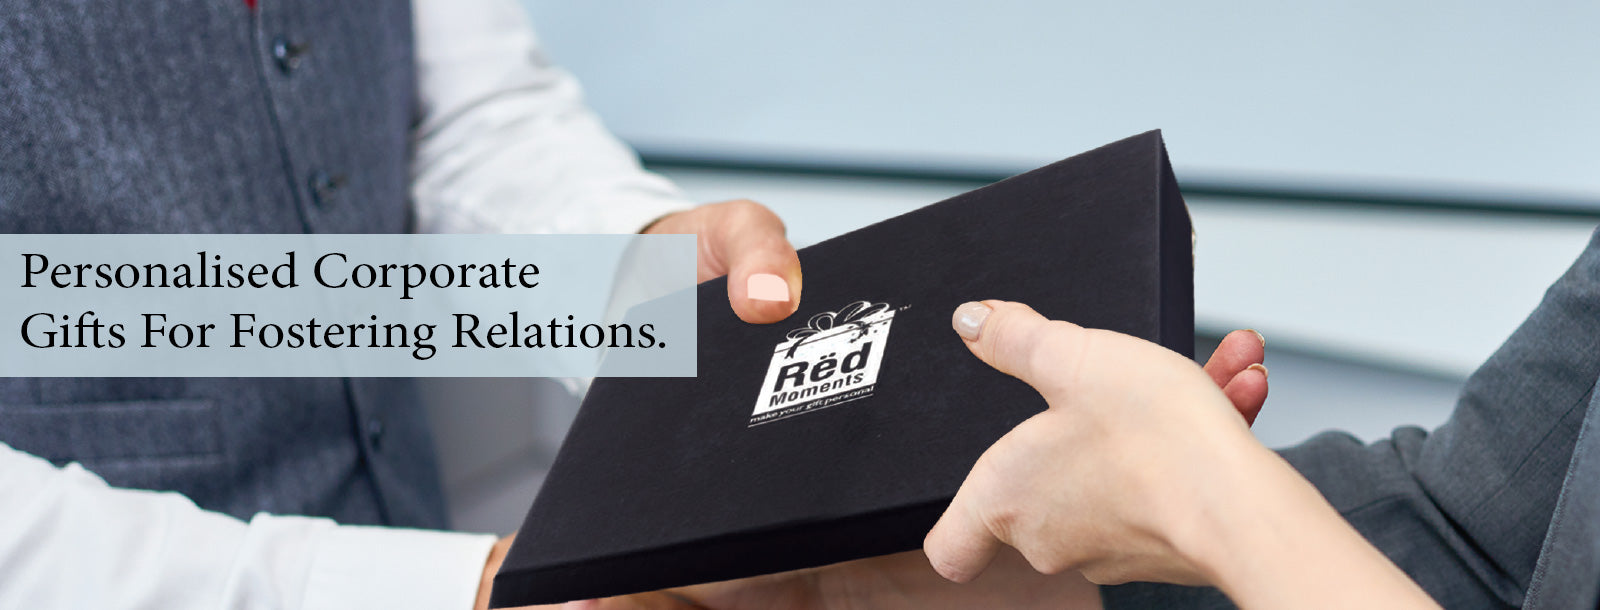 Personalised Corporate Gifts for Fostering Relations  - Red